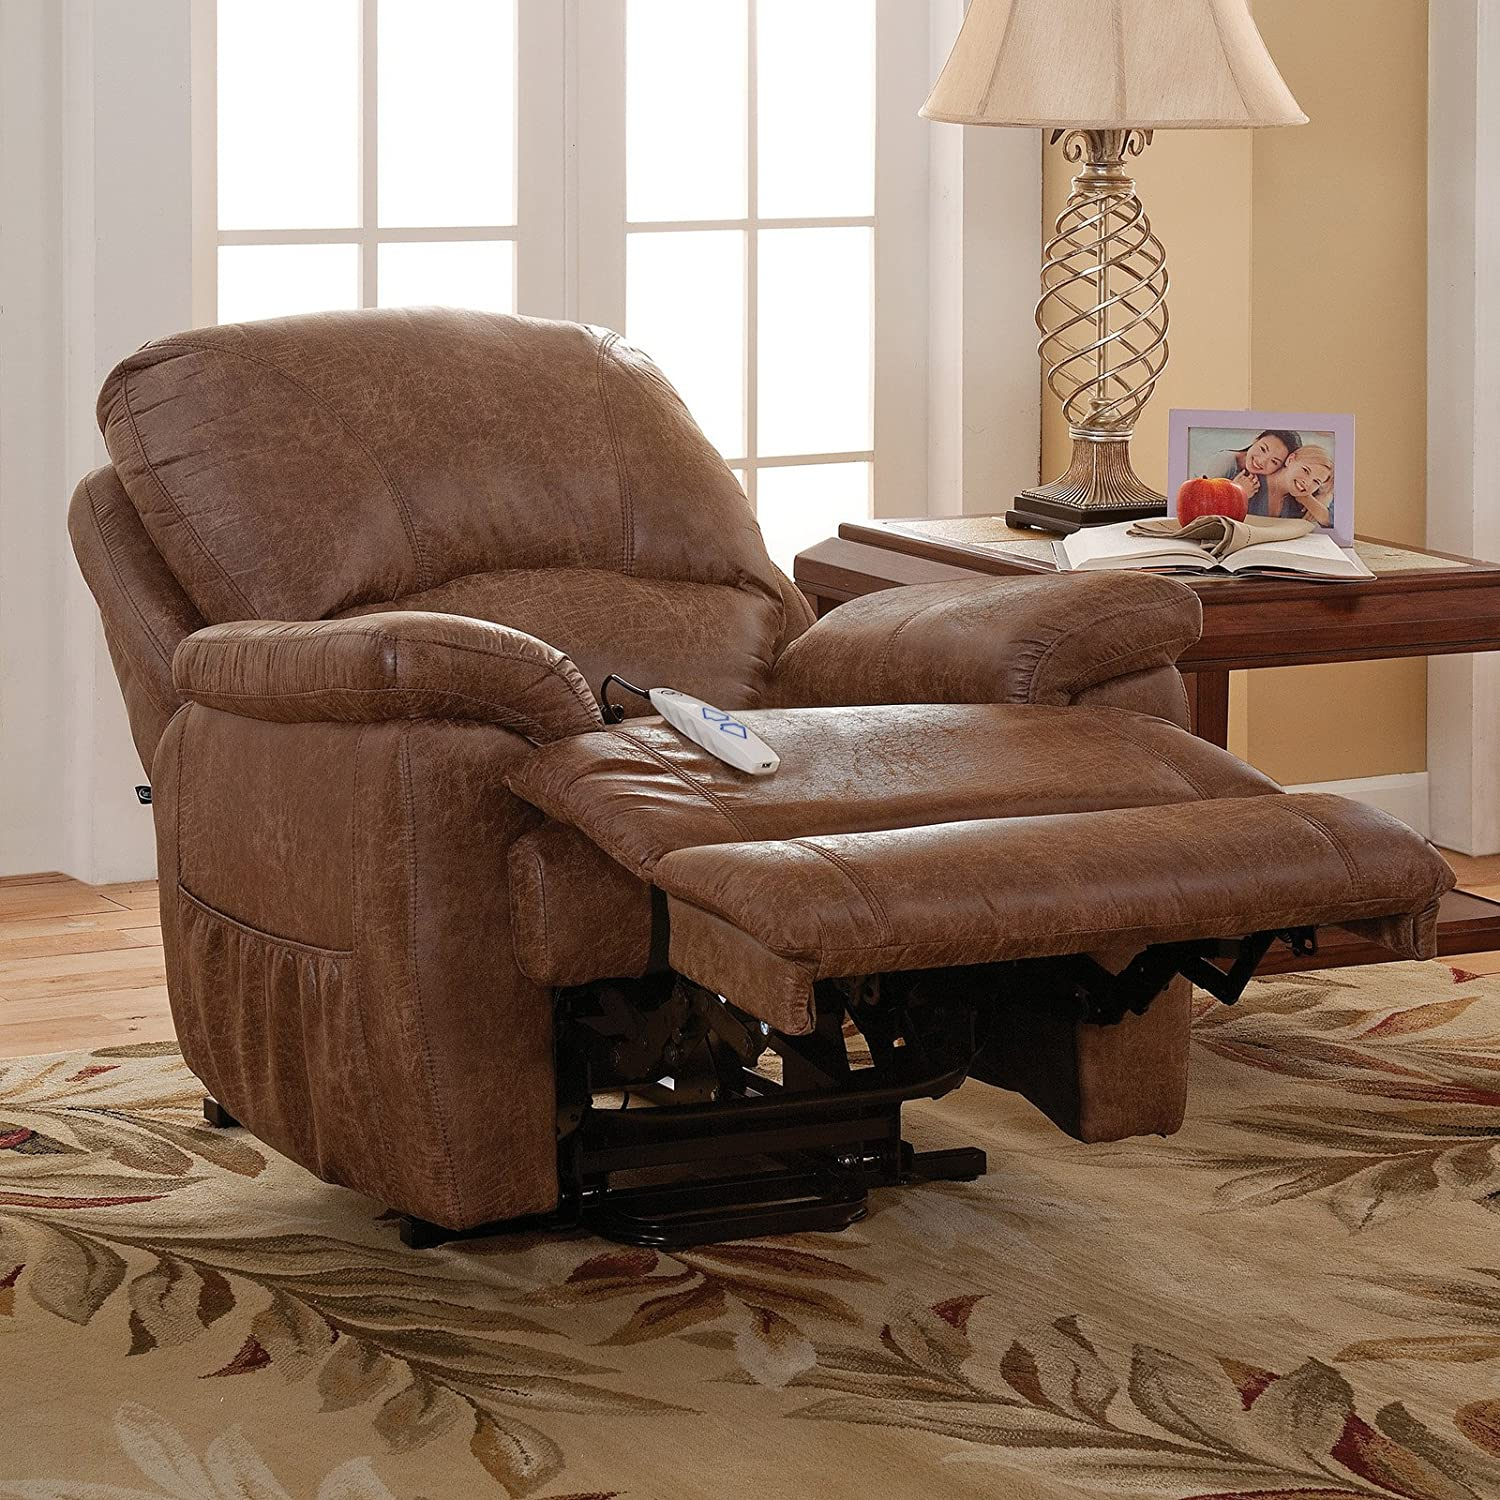 massage s chair inflow big recliner content port usb inflowcomponent cancel foam res multiple memory global p storage tall colors serta